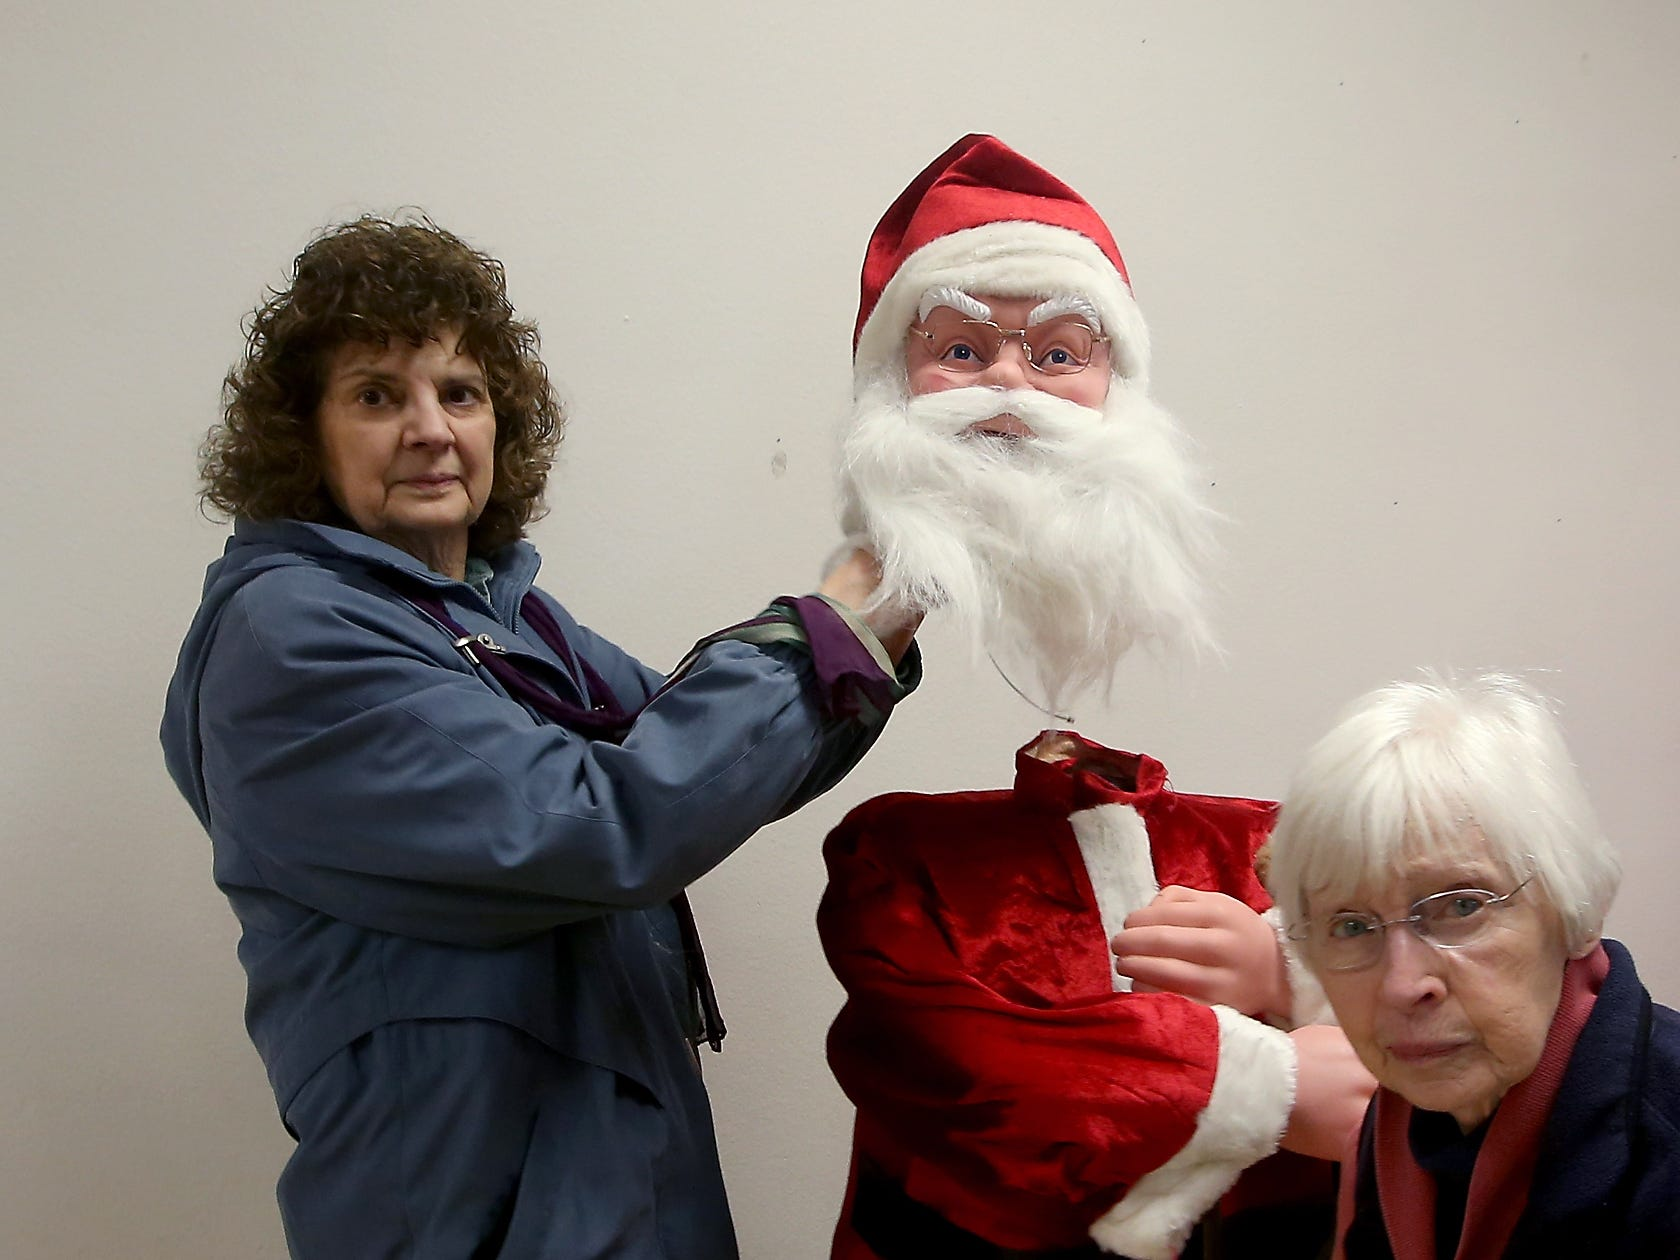 Volunteer Marghi Zarinelli (left) and Kathy Shubert attach the head of a motorized Santa as they prepare the Christmas decorations section for the annual Kitsap Rotary Auction and Garage Sale at the Kitsap Sun Pavilion on Thursday, April 12, 2018.